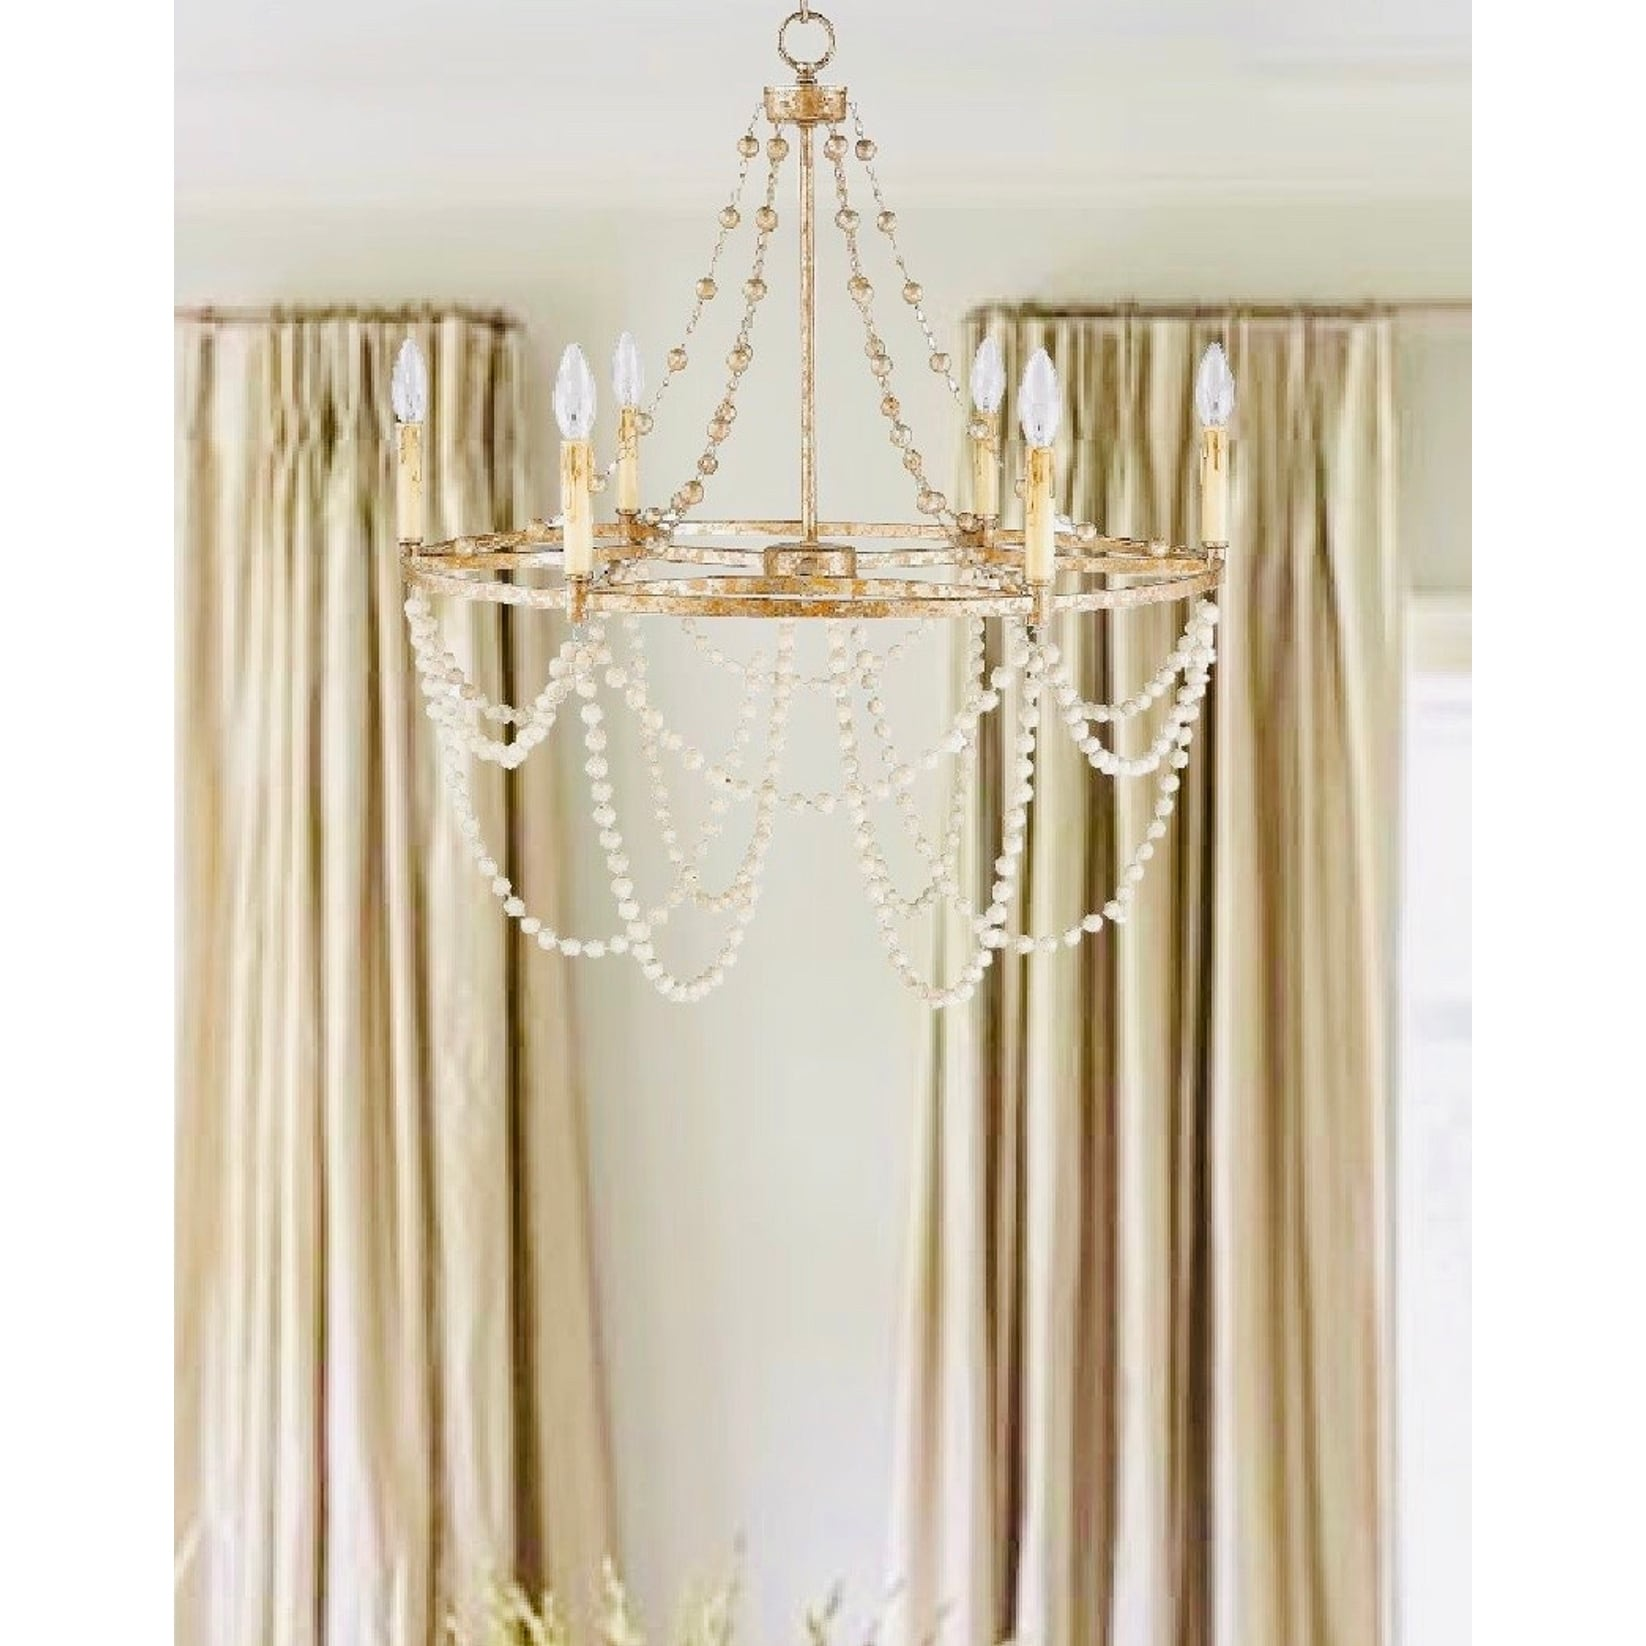 6 Light Wagon Wheel Chandelier In Gold And Silver Leaf Overstock 31794368